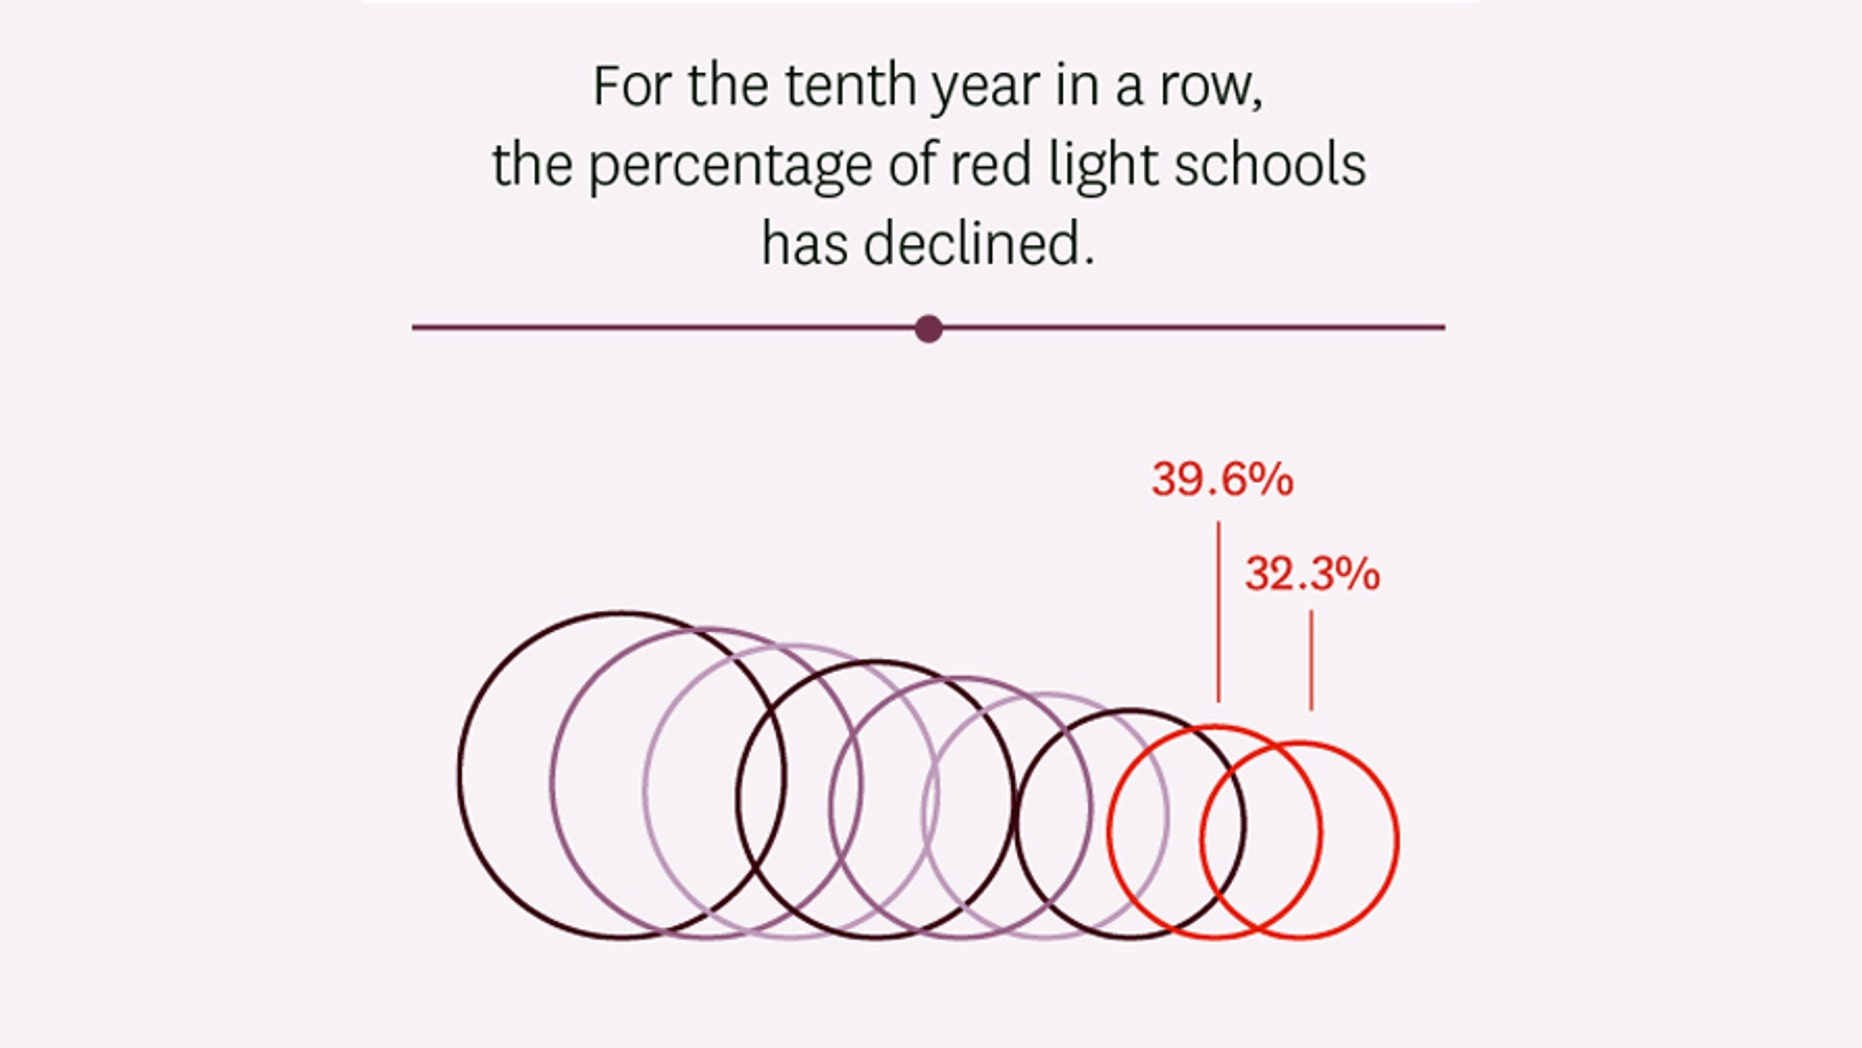 """The study by FIRE finds that for the 10th year in a row, the percentage of """"red light"""" schools -- institutions FIRE says have severely restrictive policies -- has declined."""